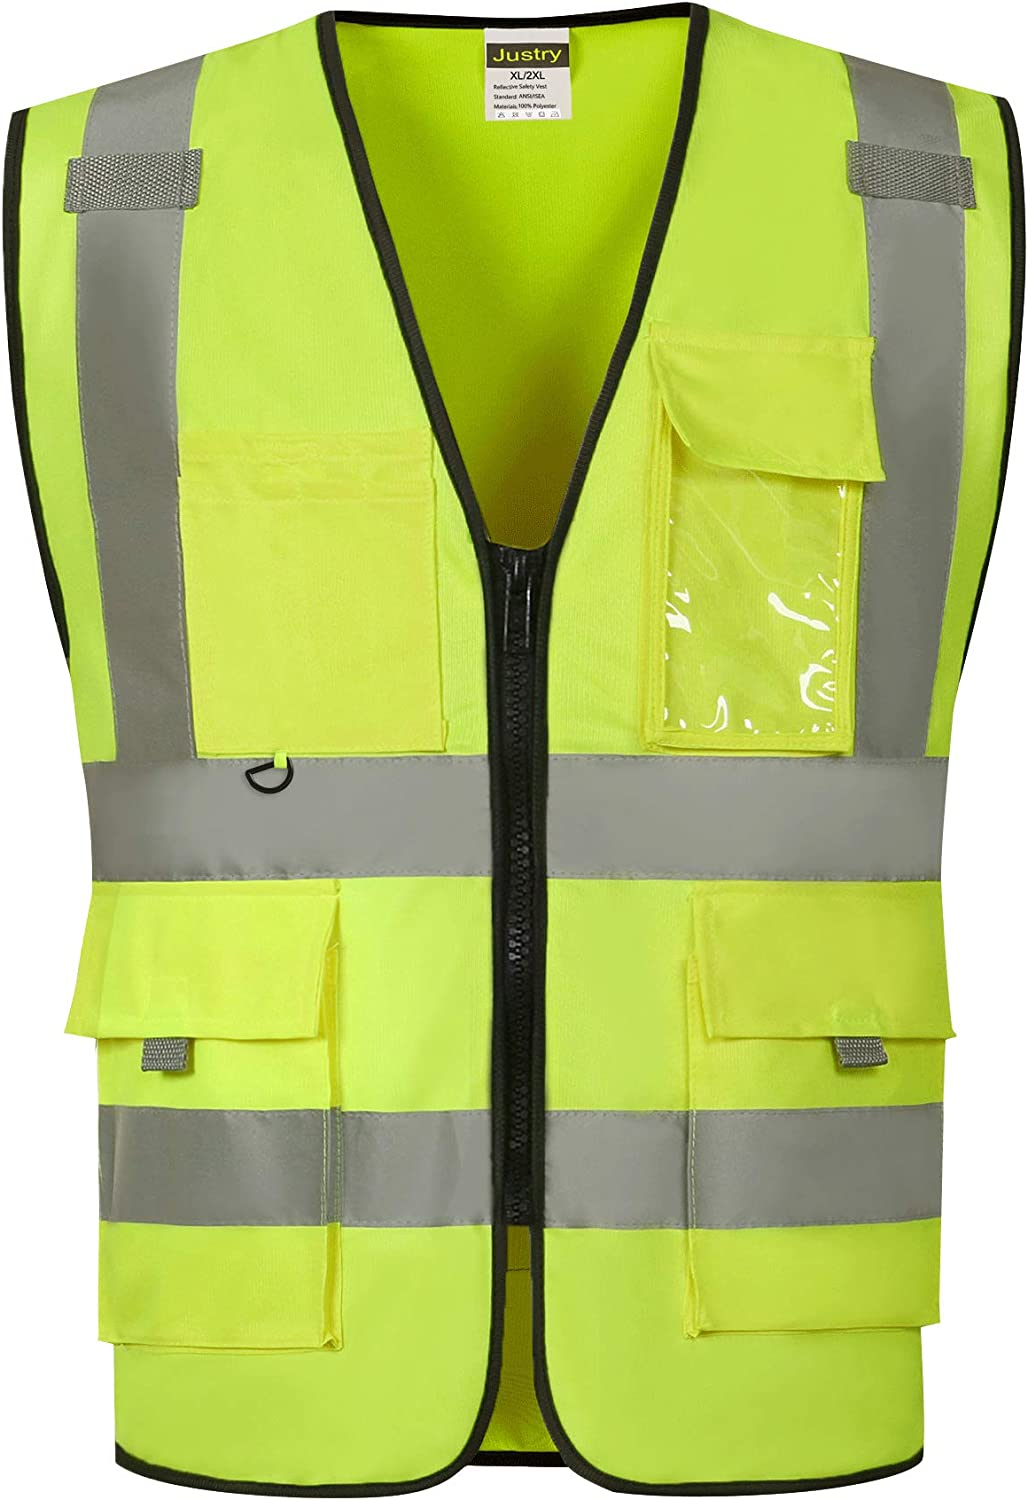 Yellow Meets ANSI//ISEA Standards,M//L Justry Safety Pockets Class 2 High Visibility Zipper Front Safety Vest With Reflective Strips